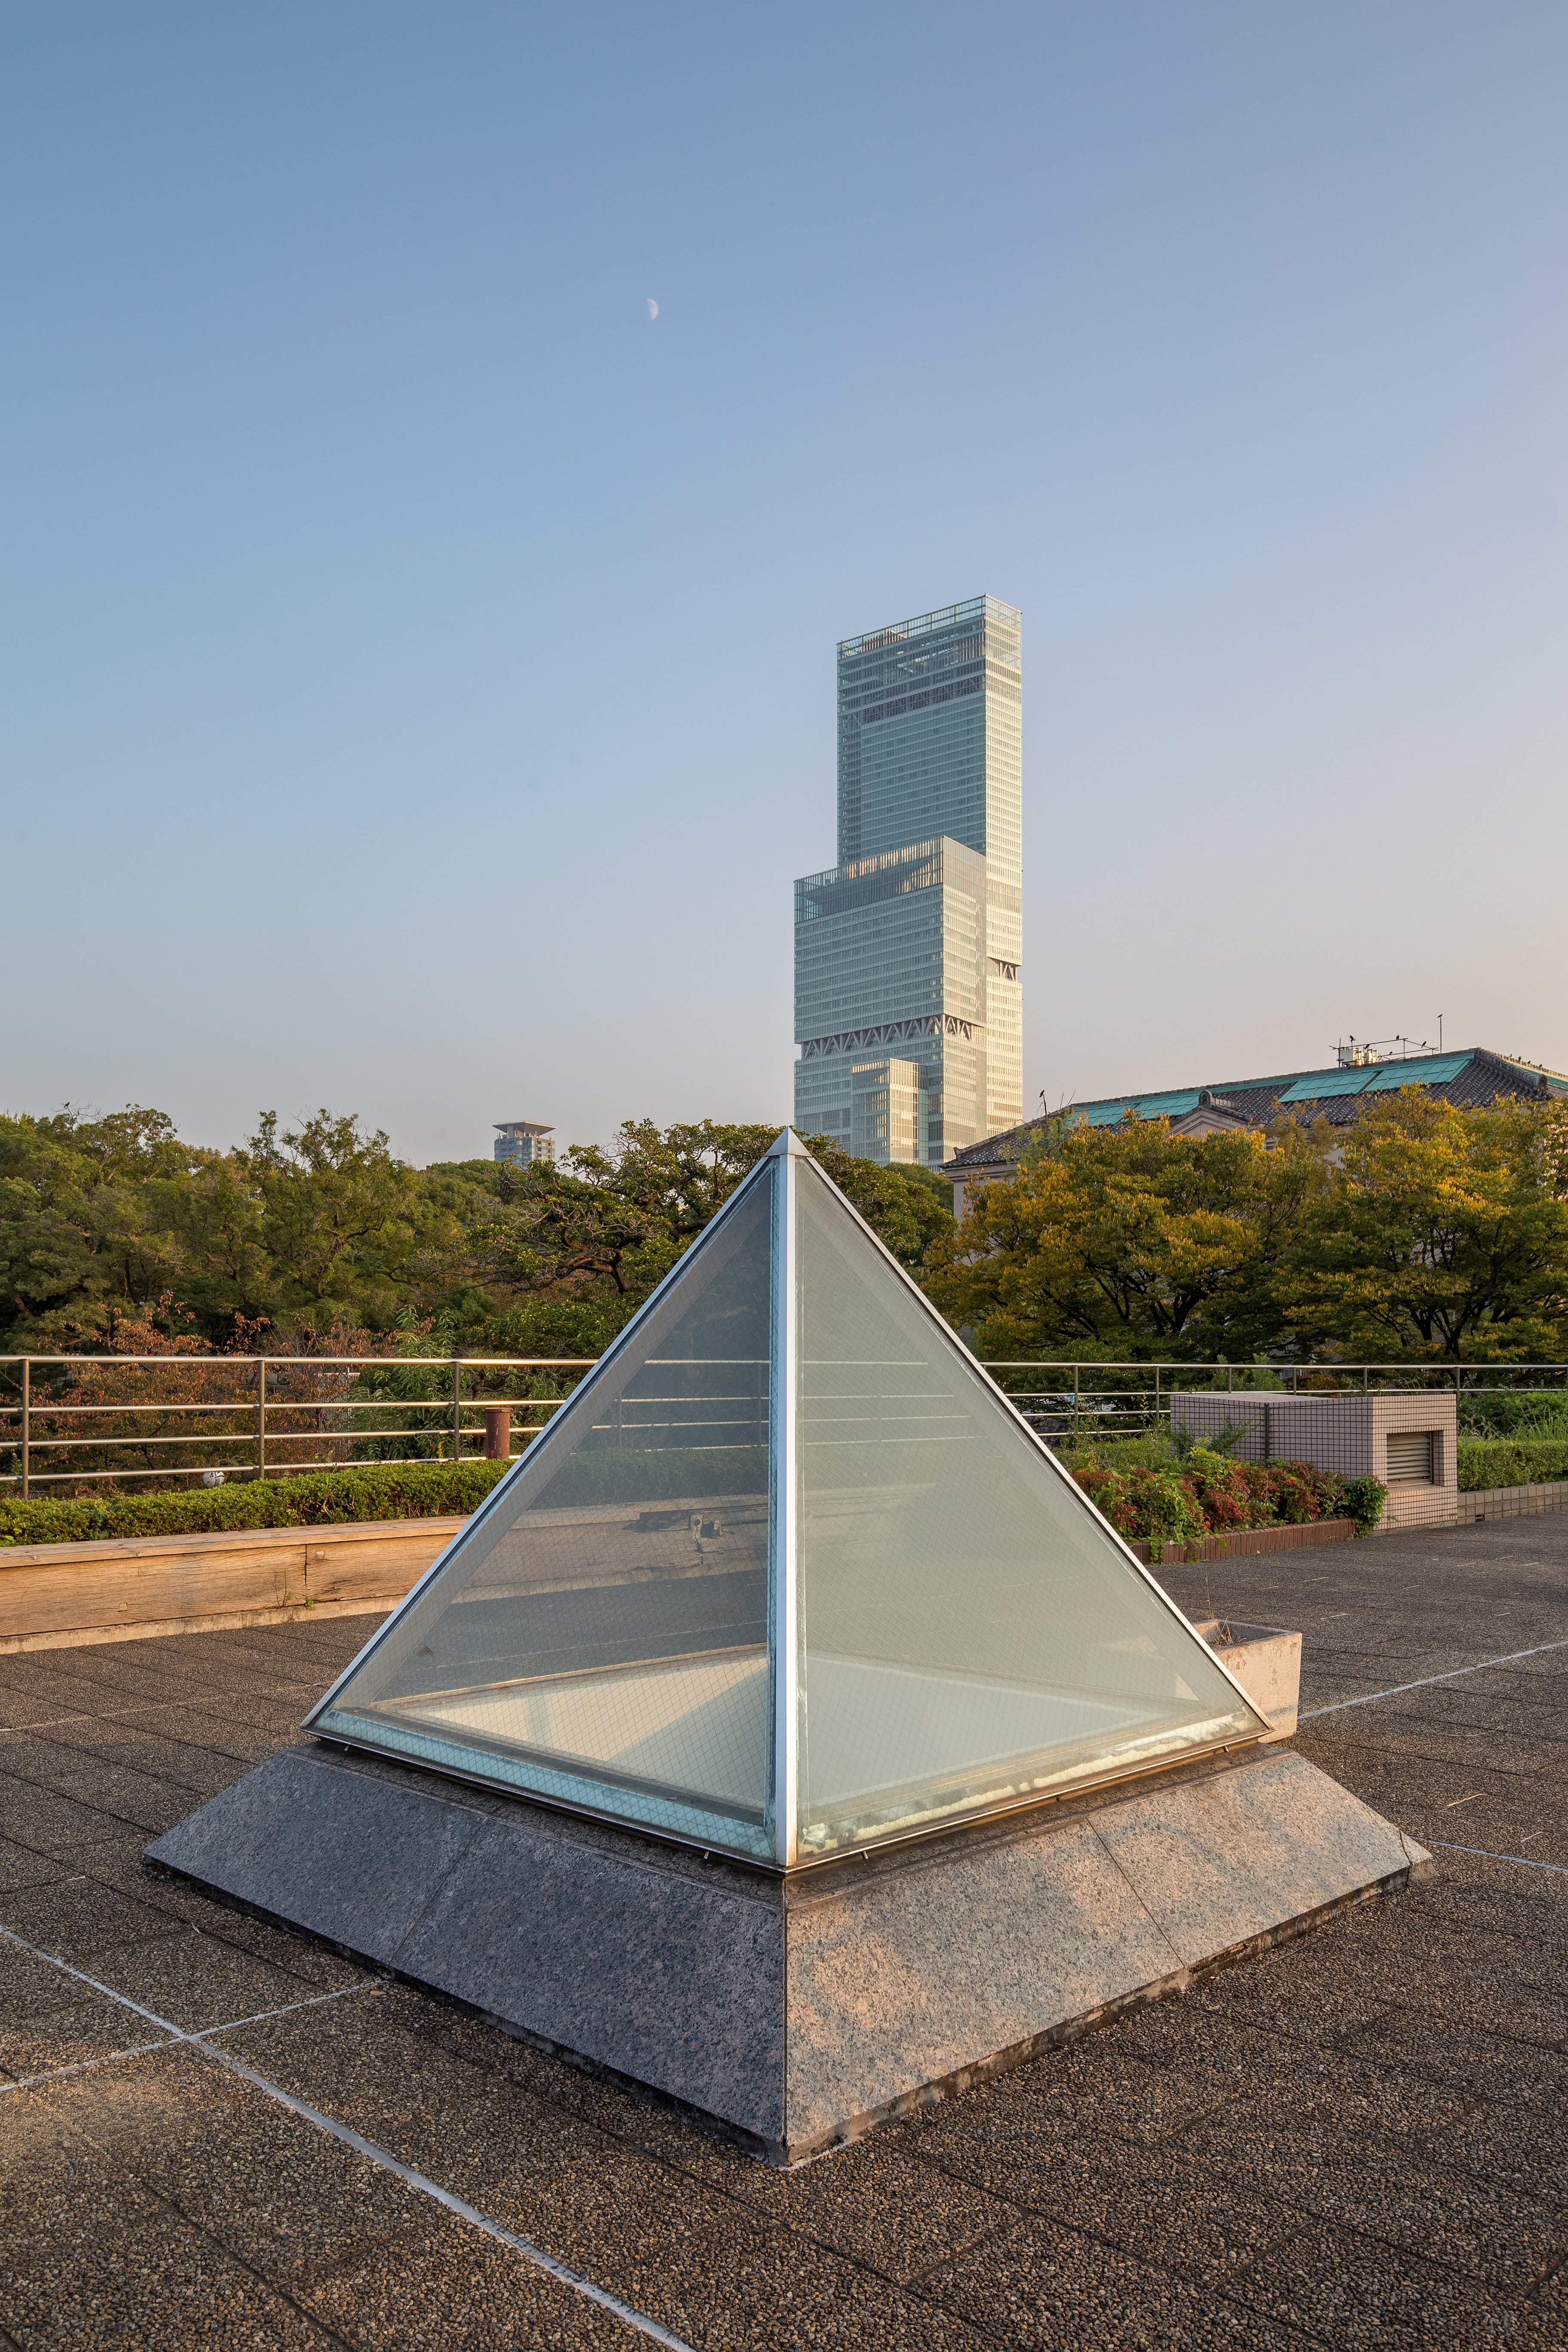 File:Square Pyramid Skylight On The Roof With Abeno Harukas In Sunset   HDR.